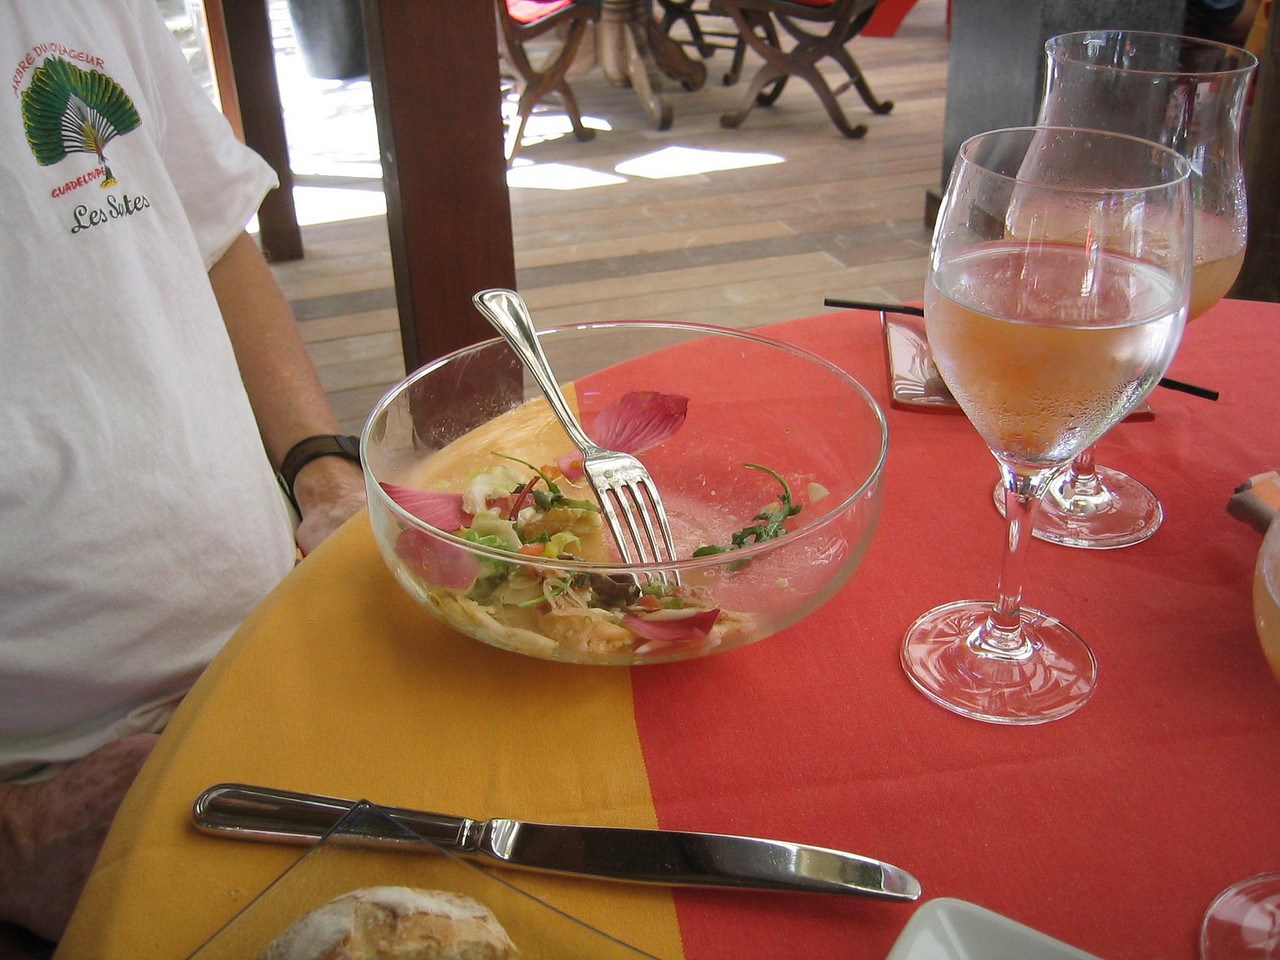 The remains of a very good salad at Sand Bar Restaurant at Eden Rock. (geotagged)